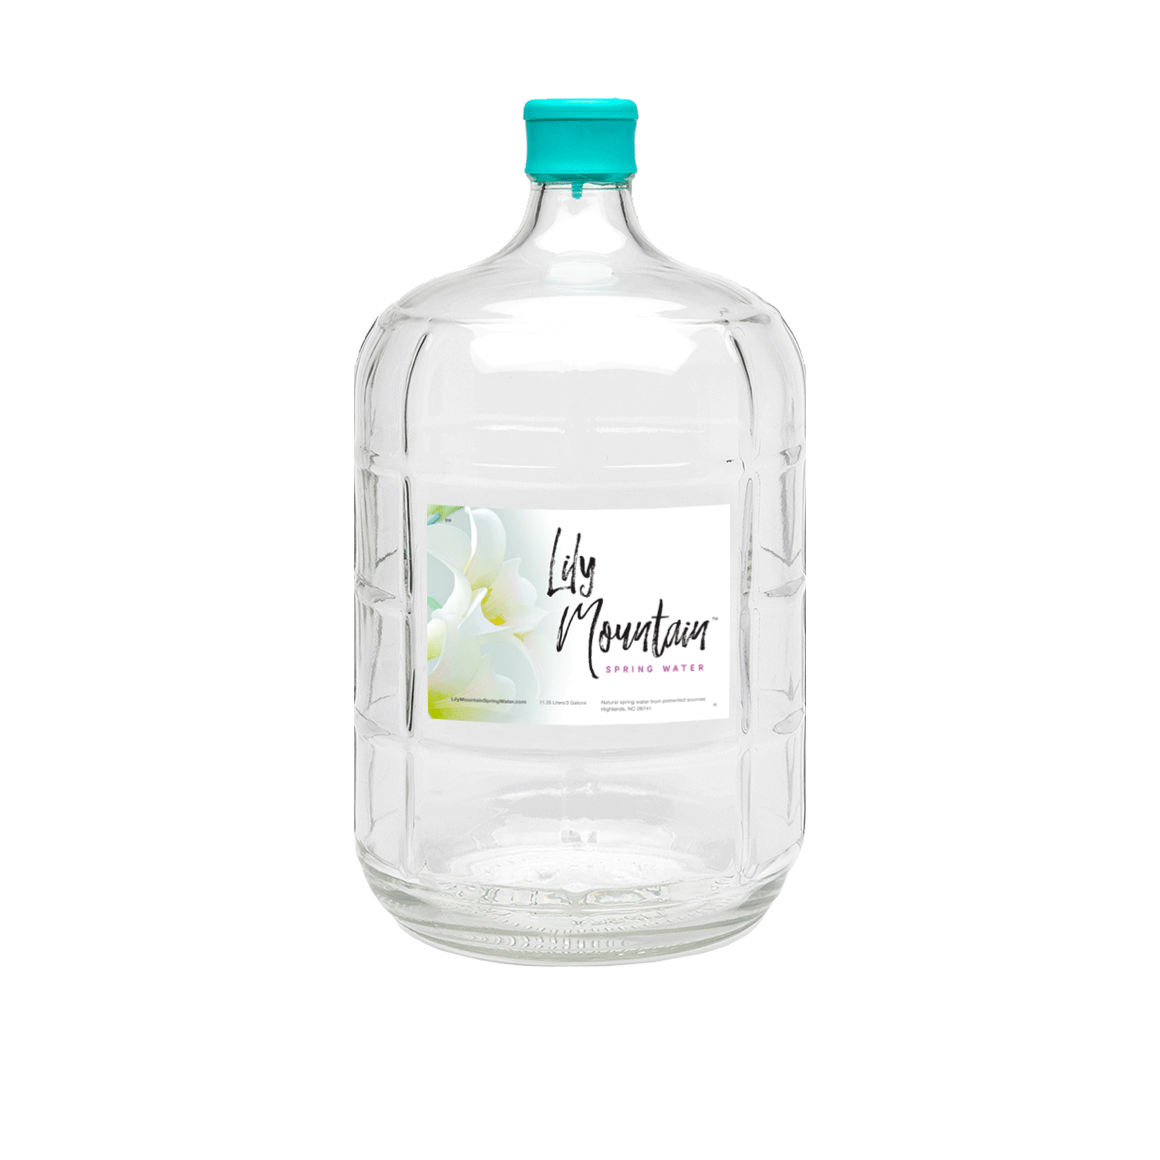 Lily® Mountain Spring Water - 3 Gallon - Bottle - Case of 1